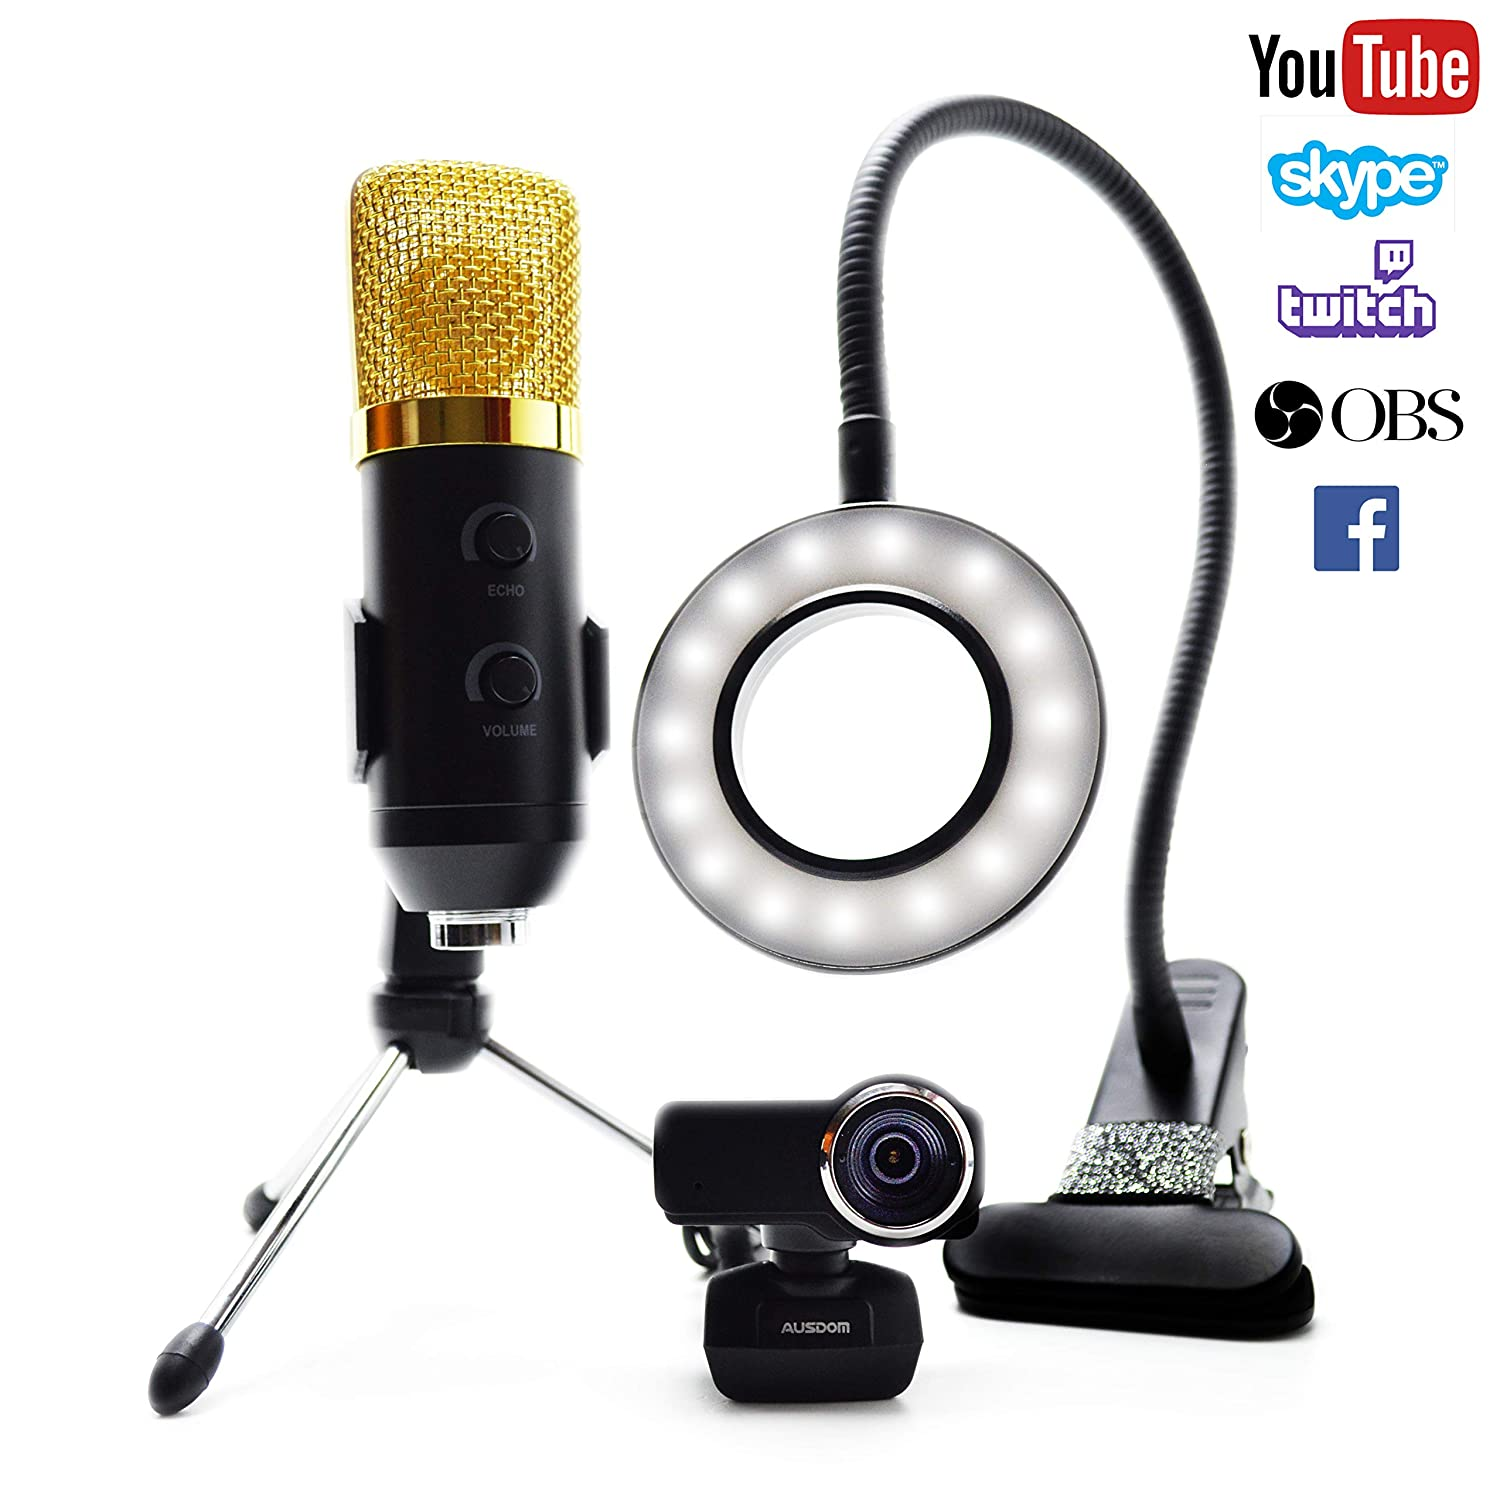 Stream Team Streaming Equipment Kit- Includes Ausdom Full HD Widescreen 1080p Webcam, USB Microphone, LED Video Light. (Works with PSN, May Need a Mic and Headphone Splitter for Xbox). Stream Team Gaming